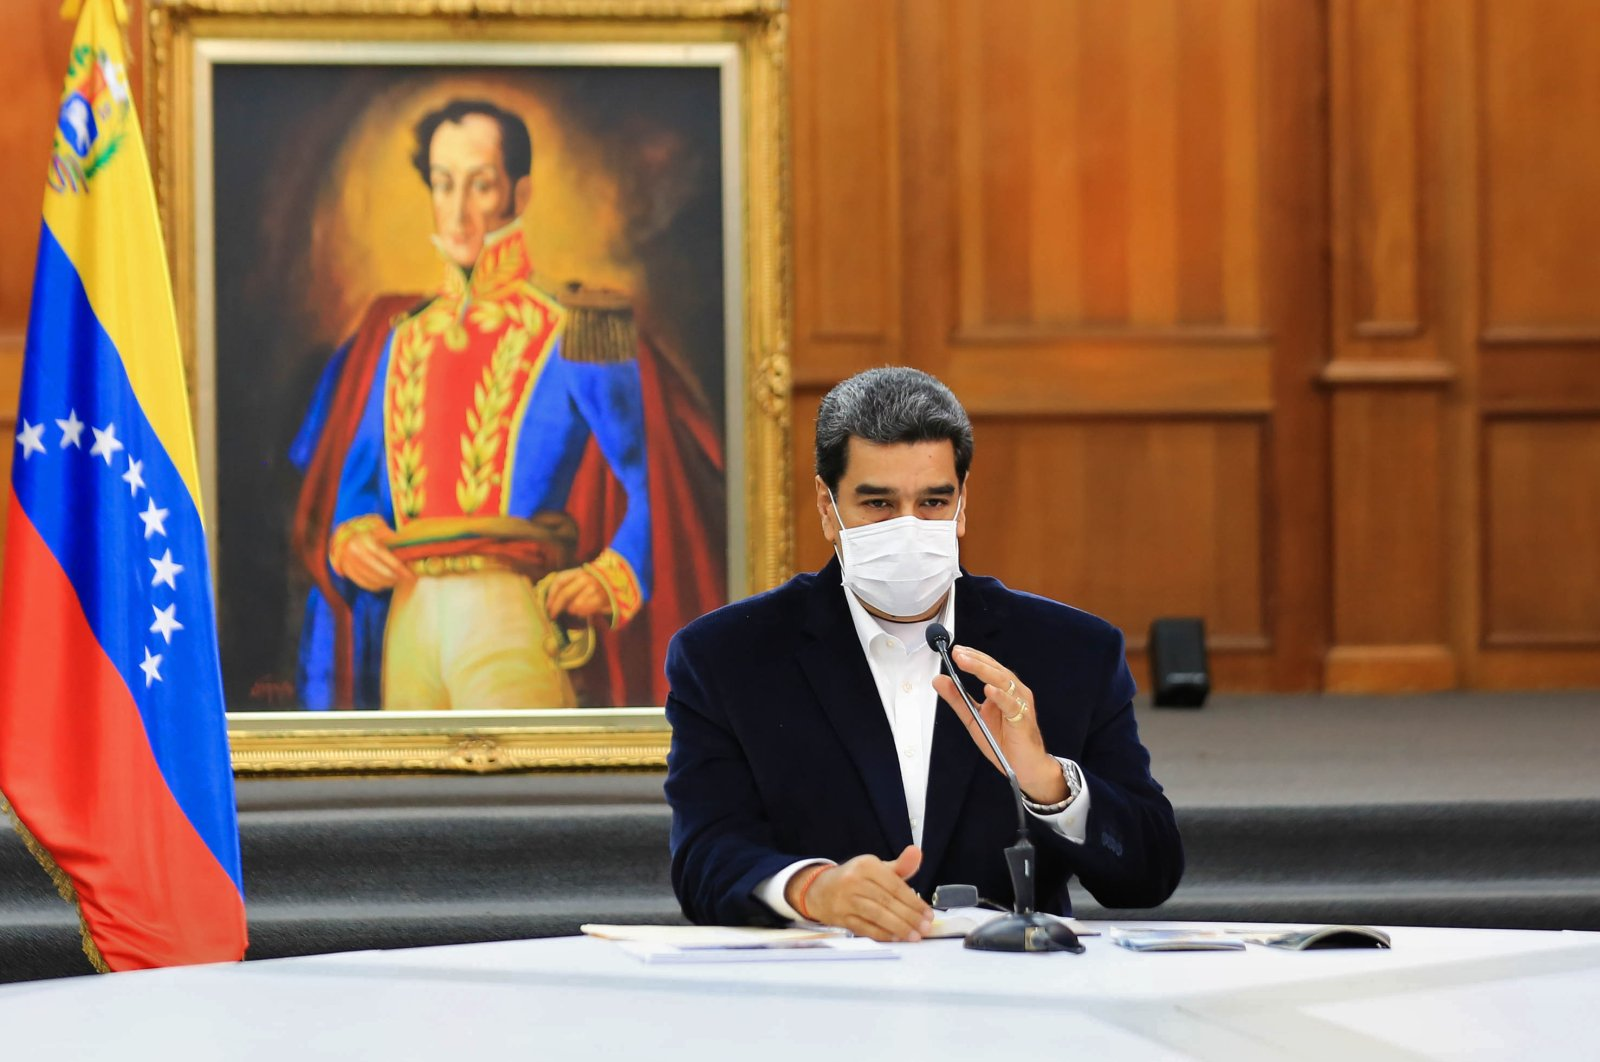 Venezuela's President Nicolas Maduro wears a face mask during a meeting with members of the Bolivarian National Armed Forces (FANB) at Miraflores Presidential Palace, Caracas, May 4, 2020. (AFP Photo)